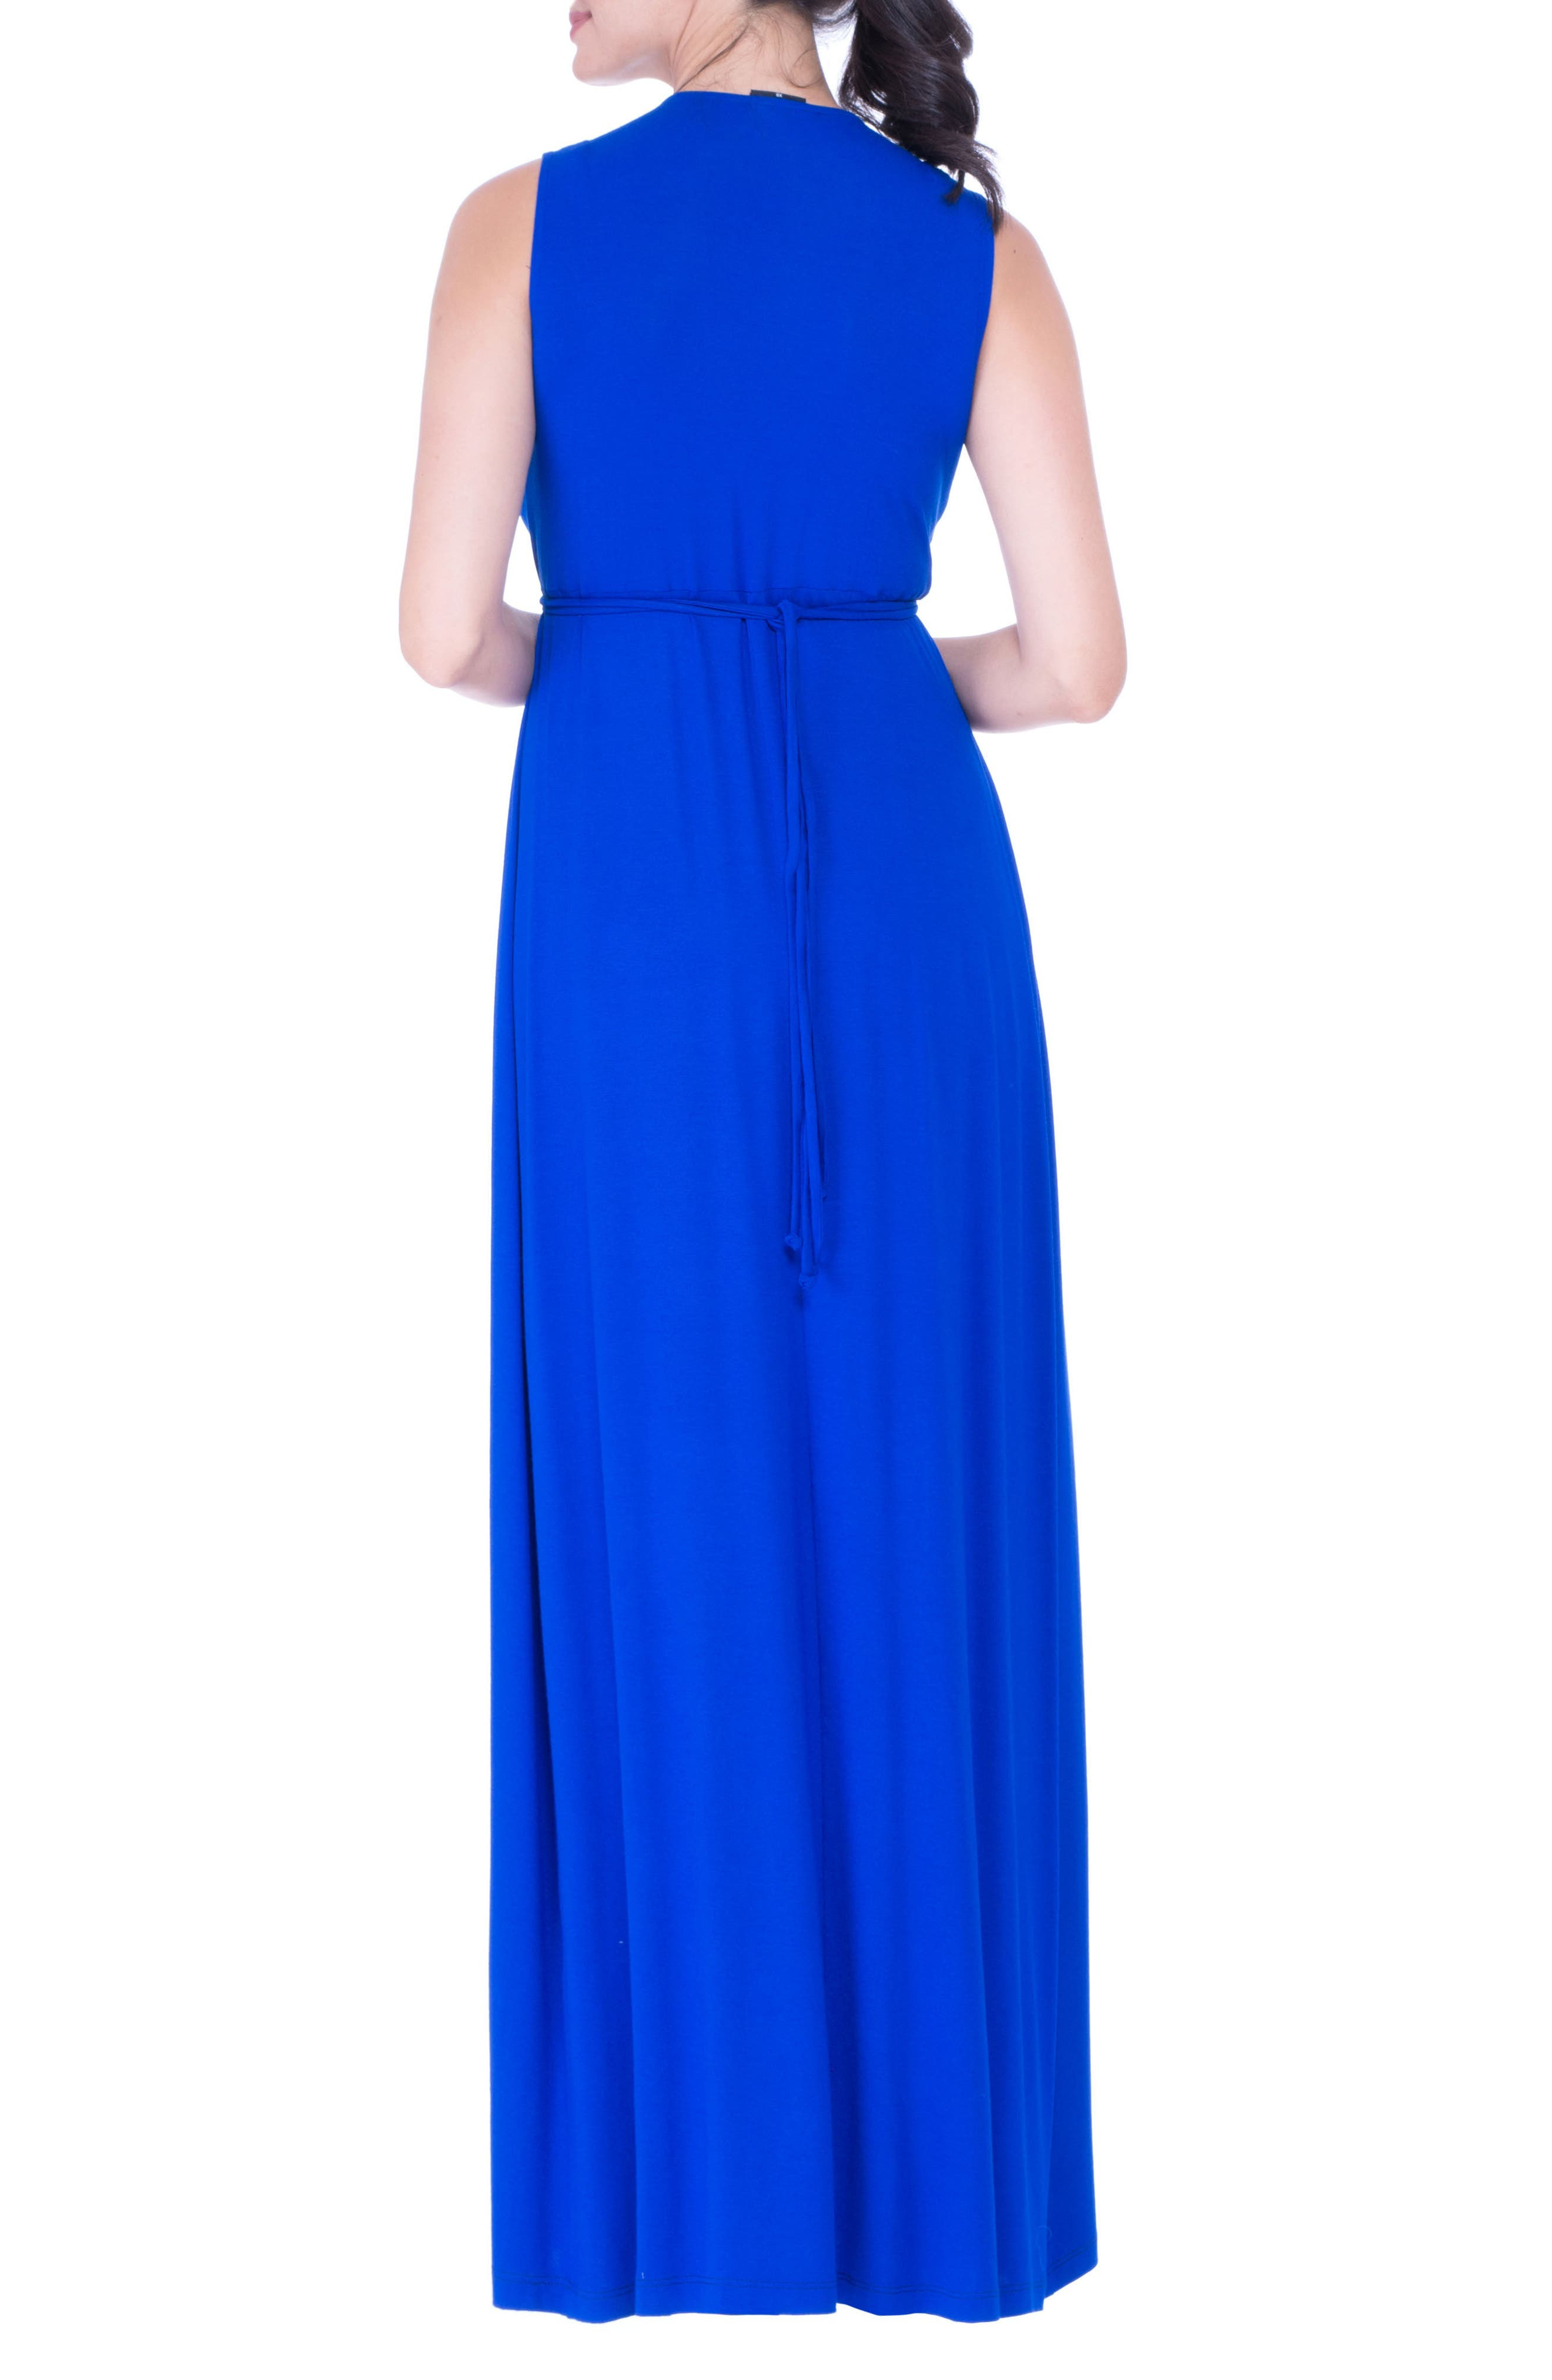 Lucy Maternity Maxi Dress,                             Alternate thumbnail 2, color,                             BLUE